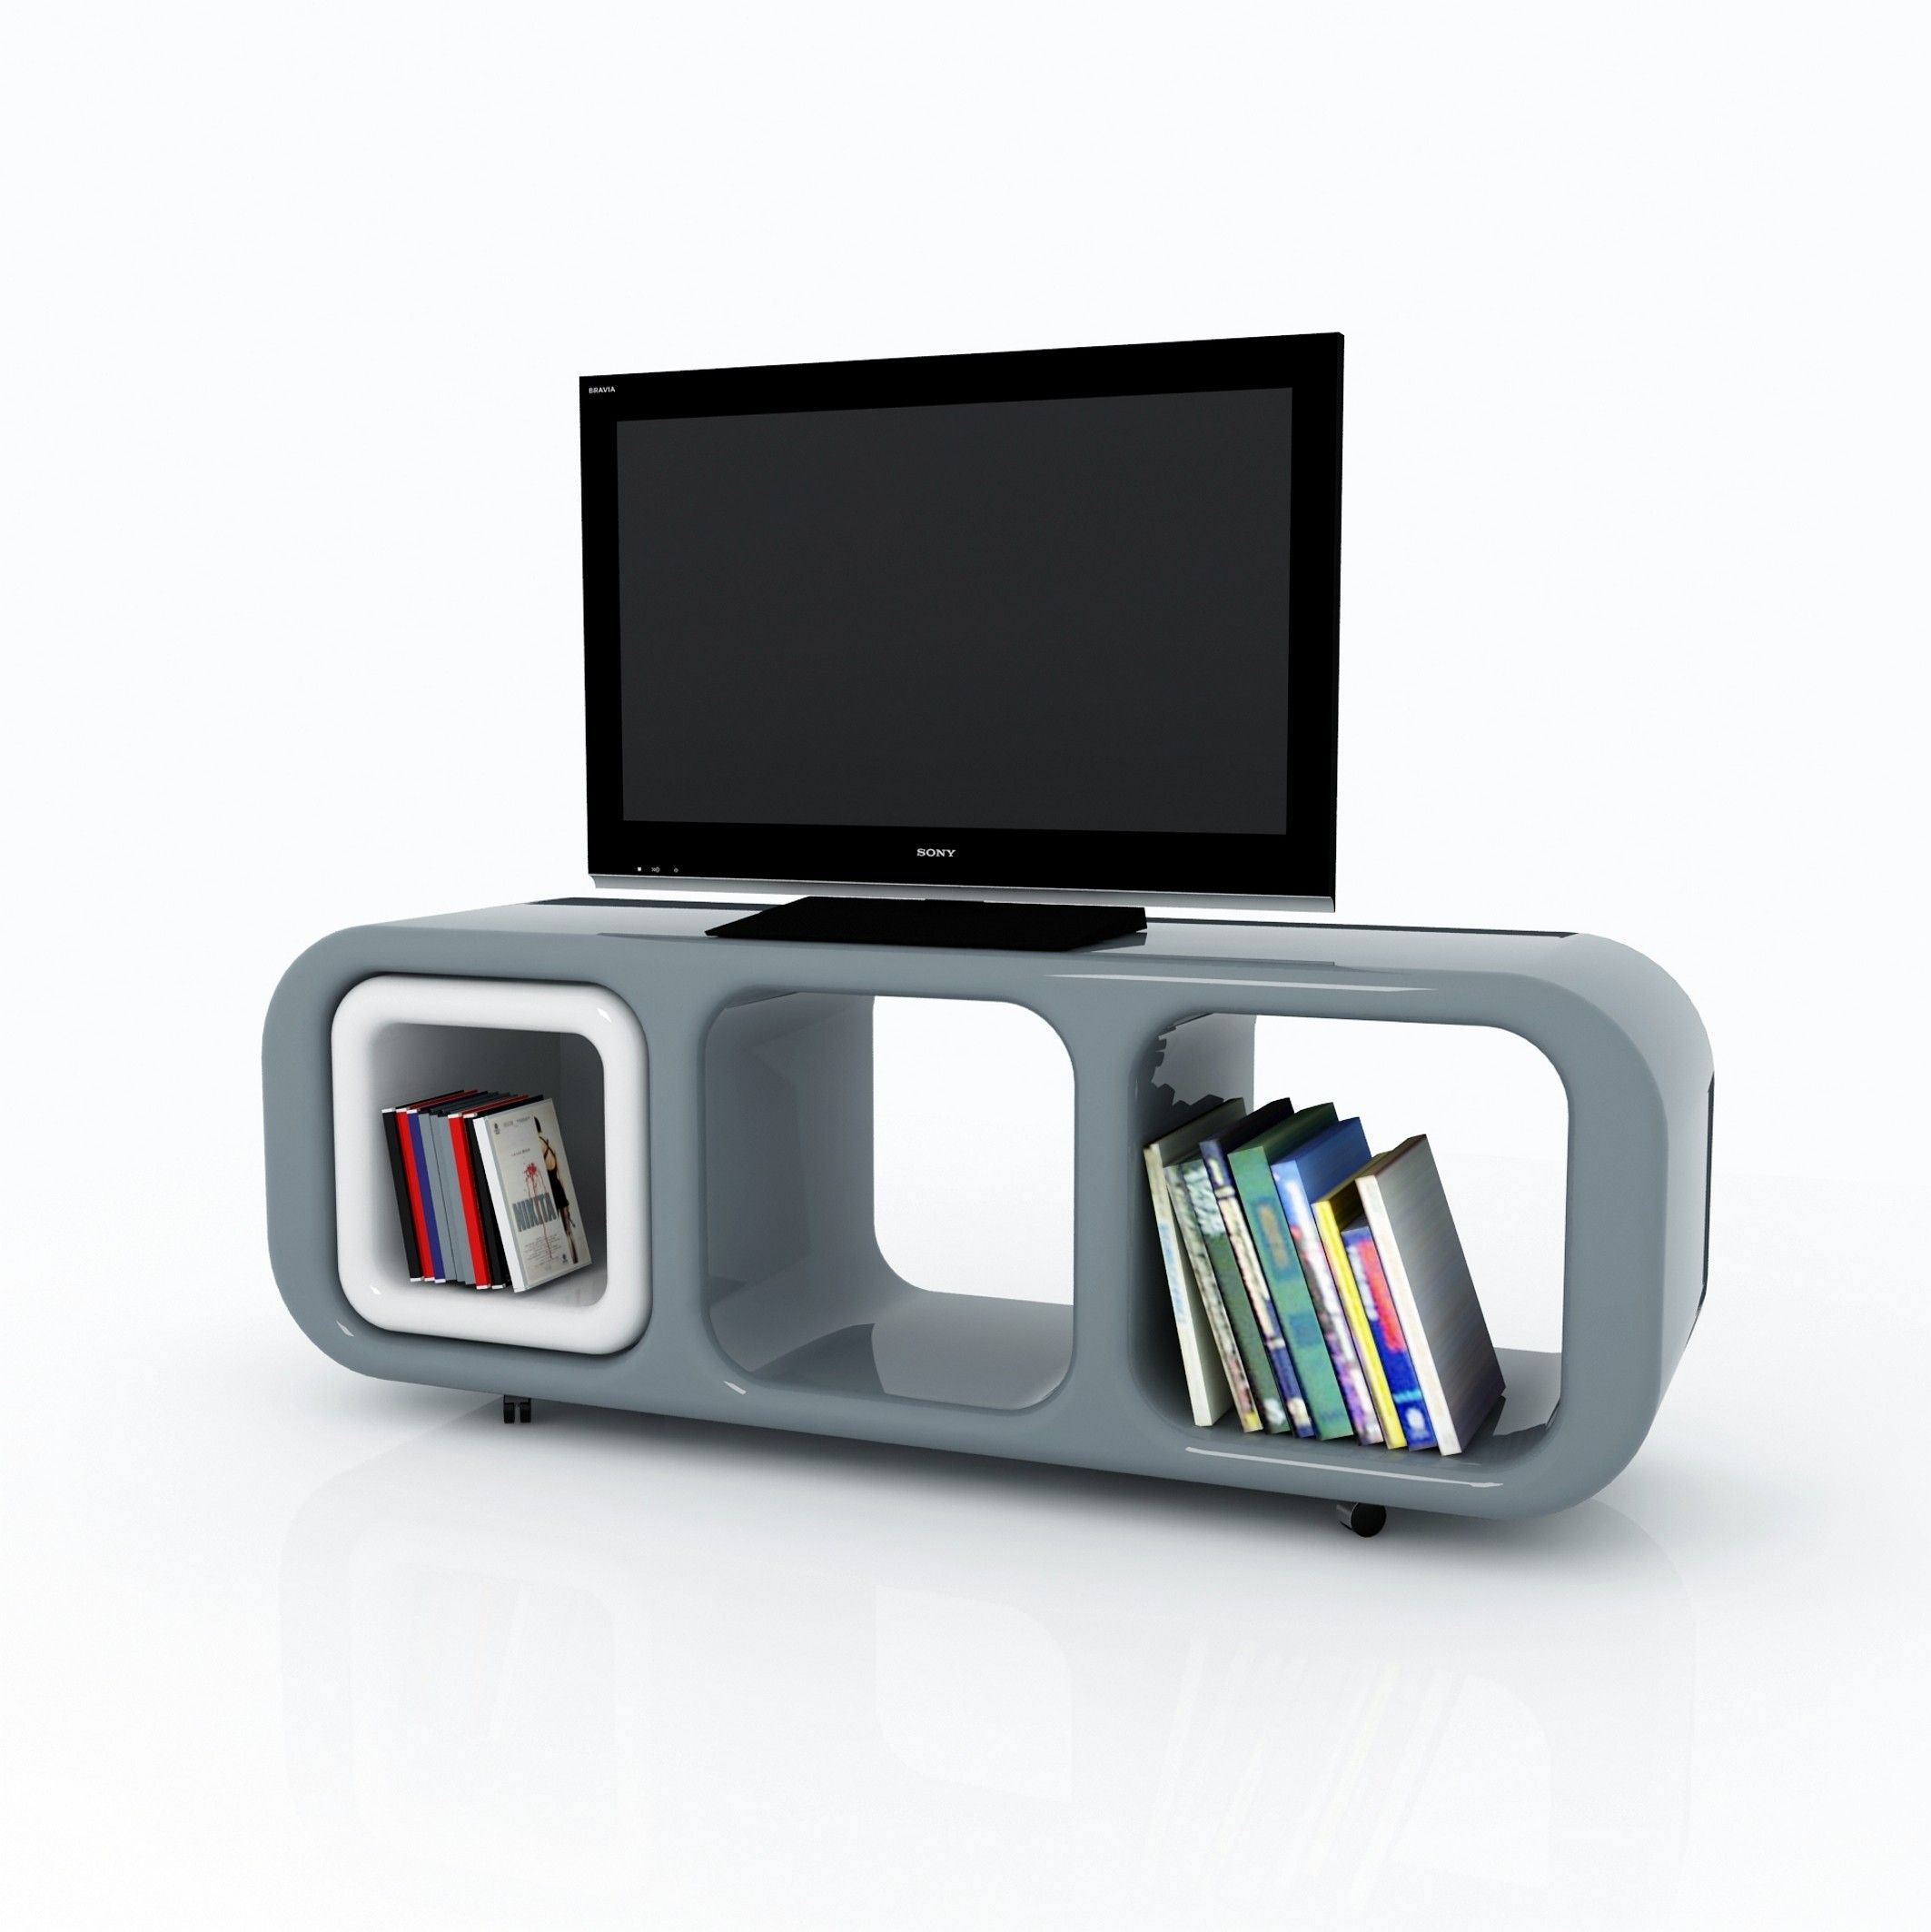 mobile porta tv eracle design moderno su ruote in resina